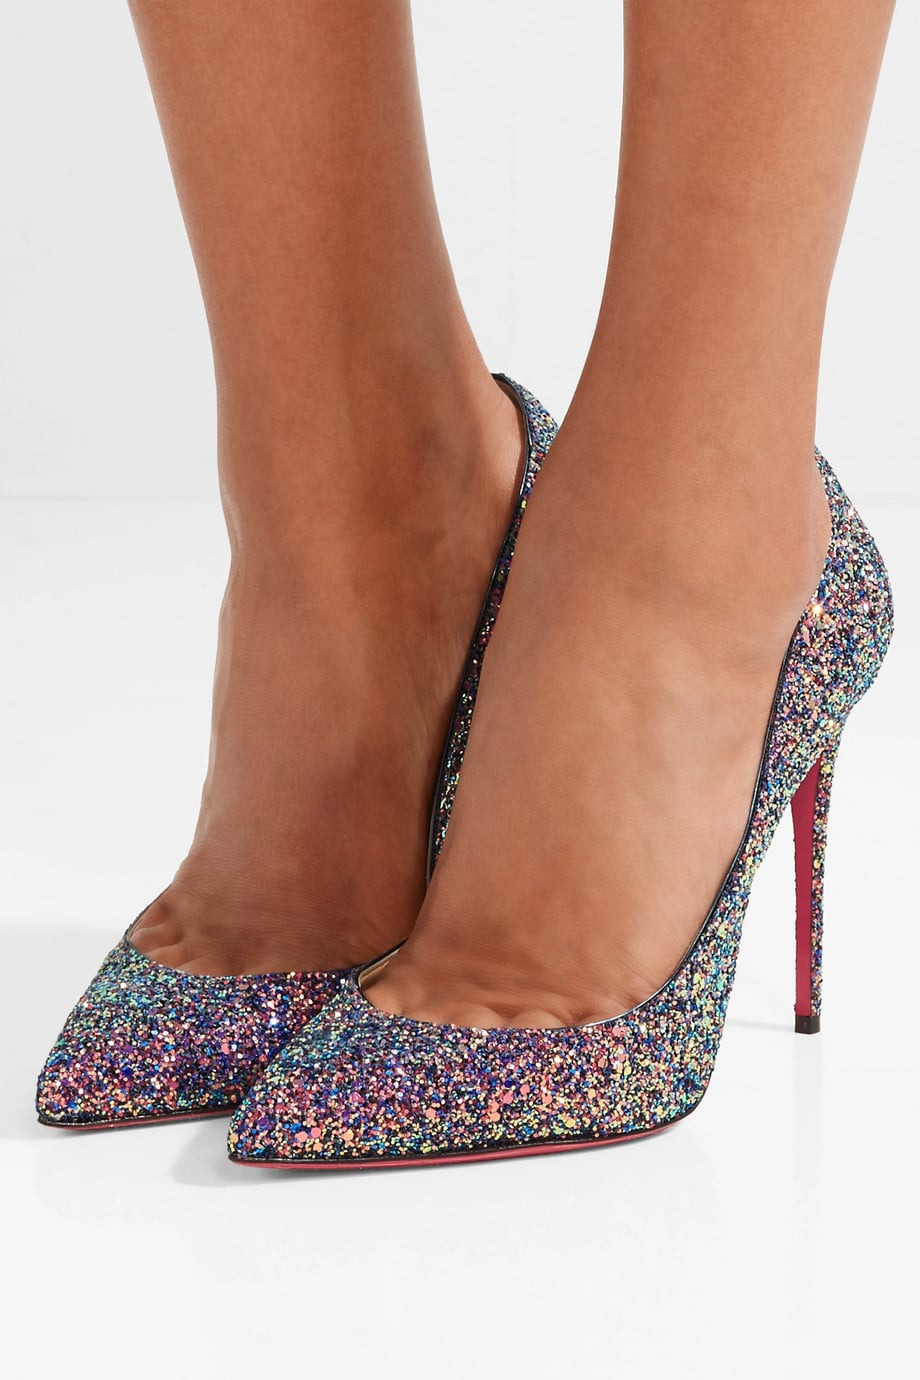 online store 171b4 f1f9a Christian Louboutin Pigalle Follies Glittered Pumps | These ...